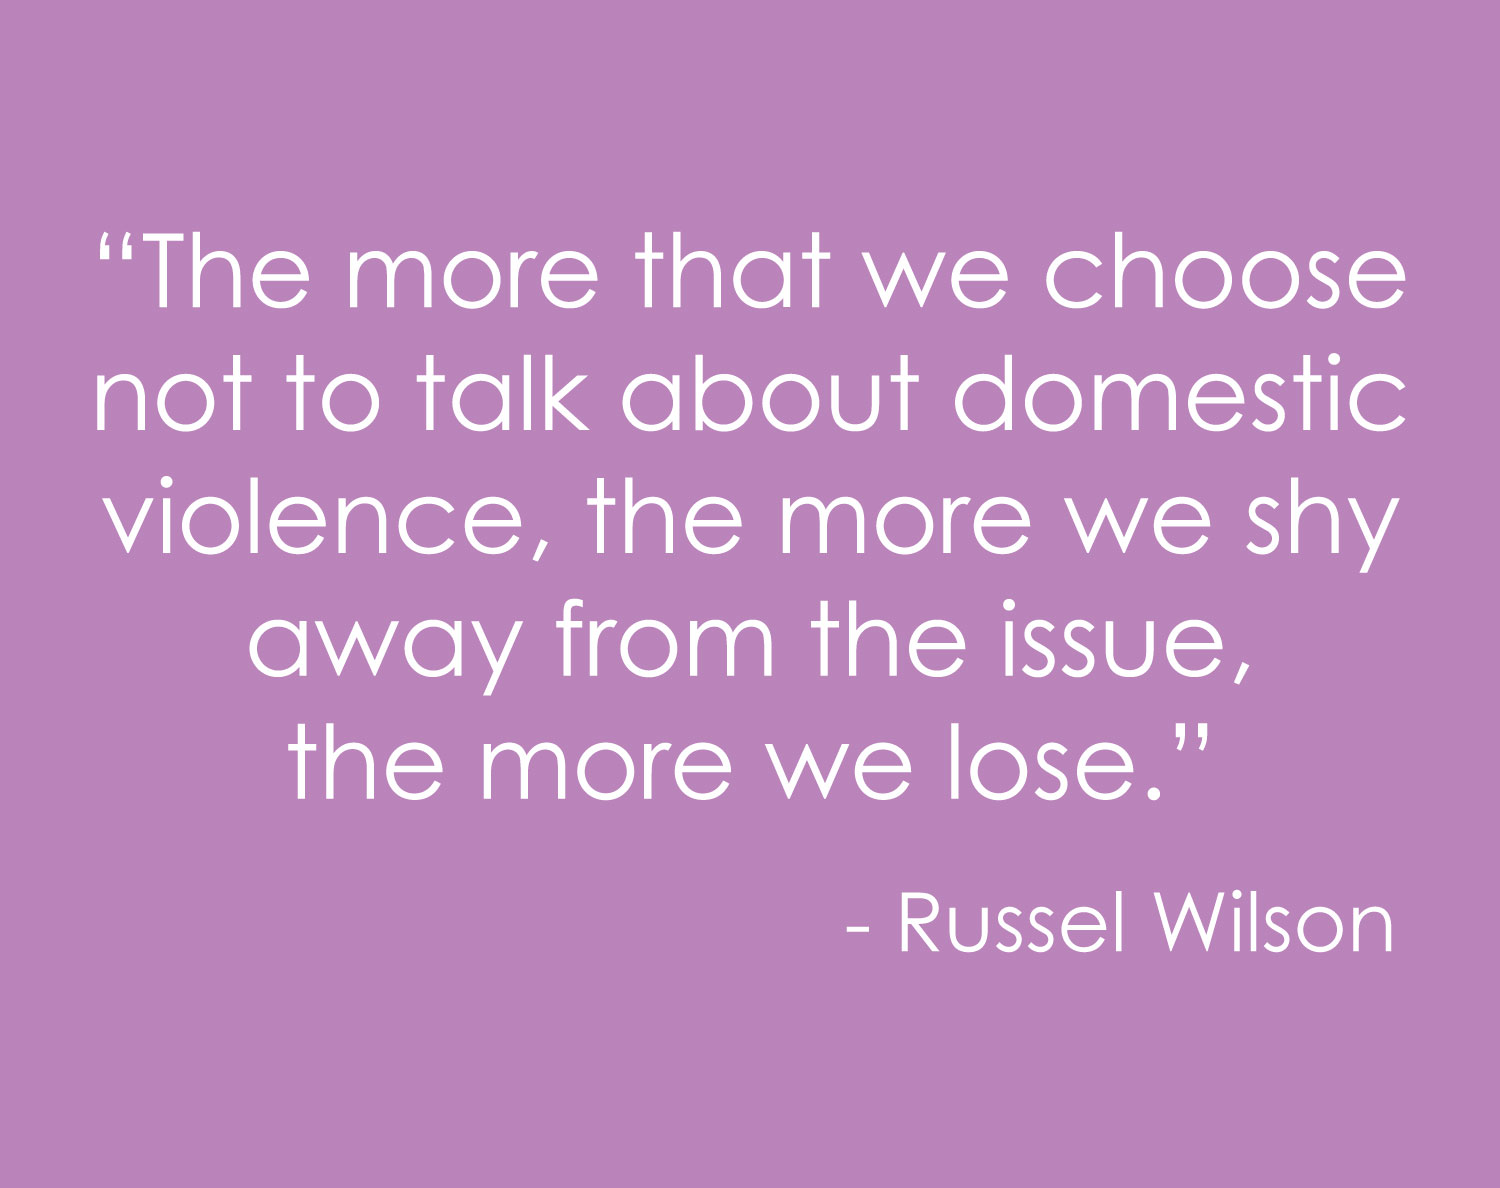 """The more that we choose not to talk about domestic violence, the more we shy away from the issue, the more we lose."" ― Russell Wilson"